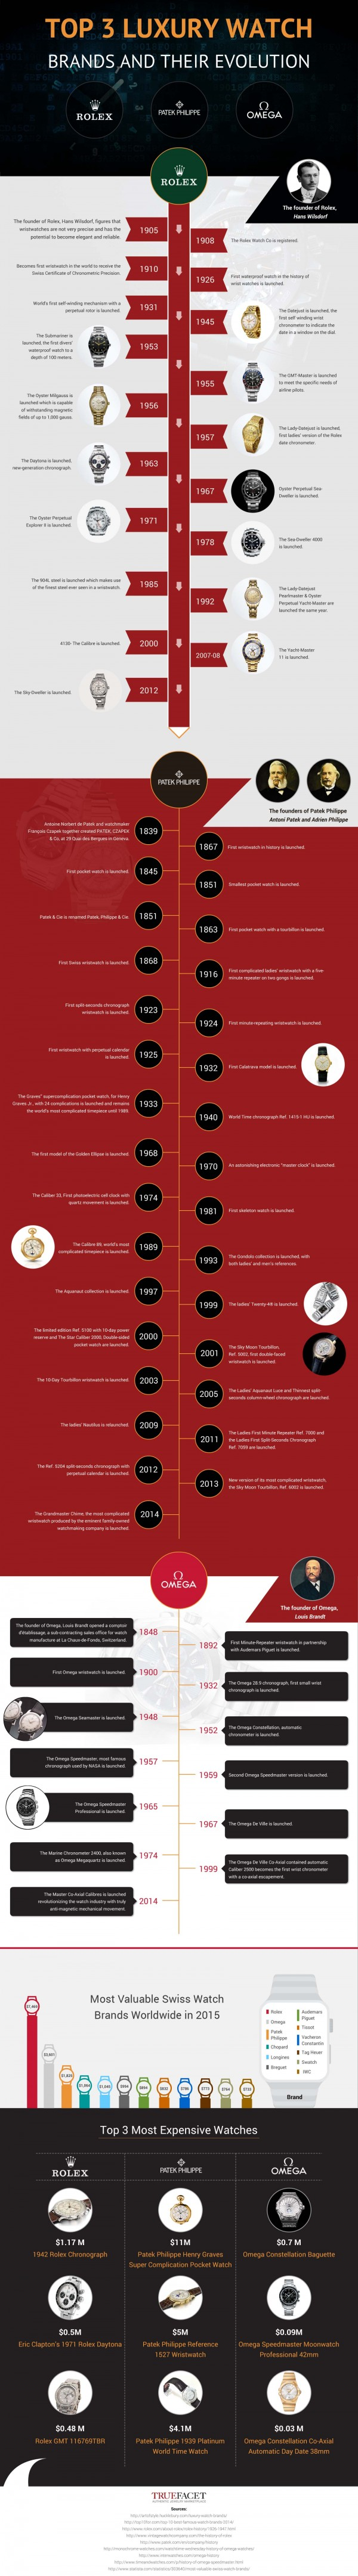 TrueFacet_Top-3-Luxury-Brands-and-Their-Evolution-v4